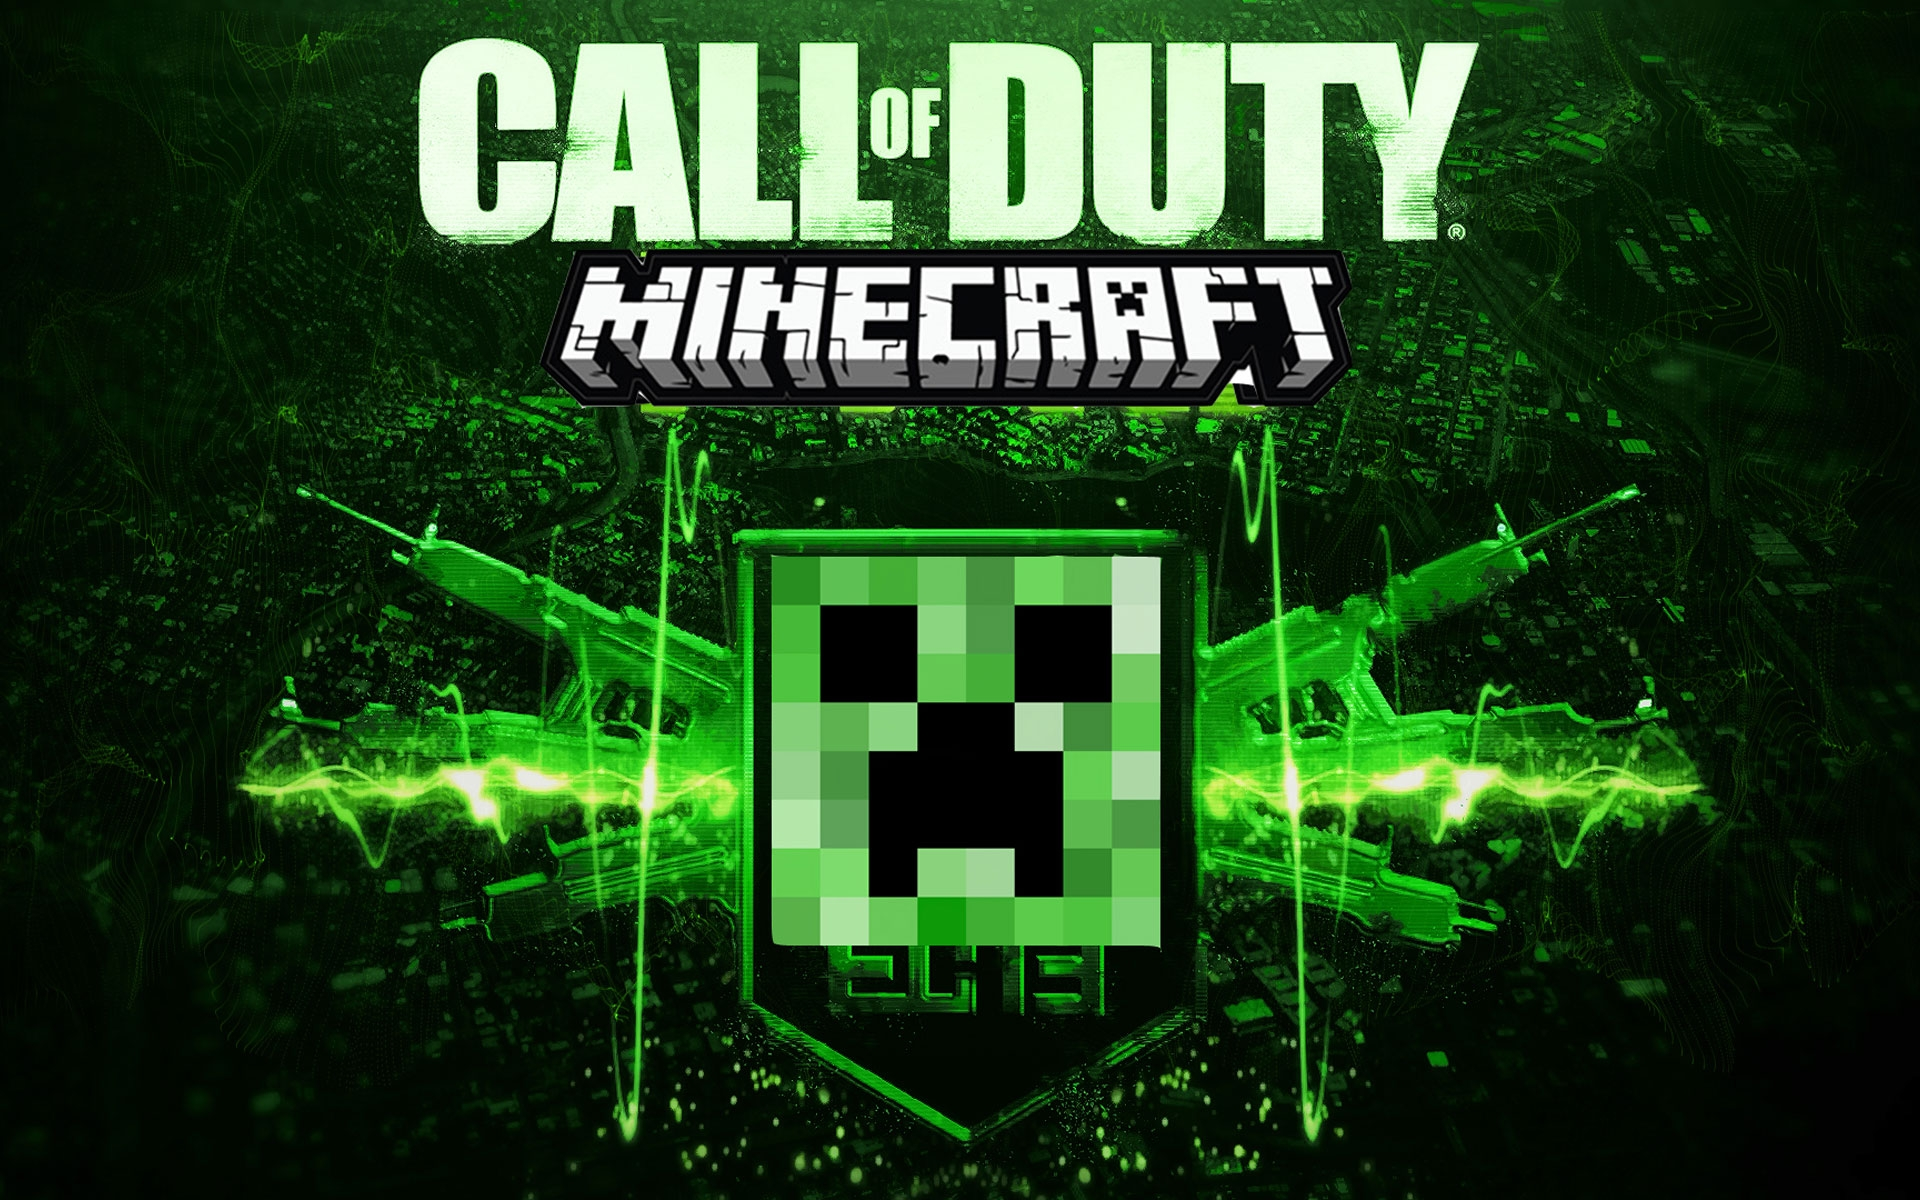 Cool Minecraft Wallpaper